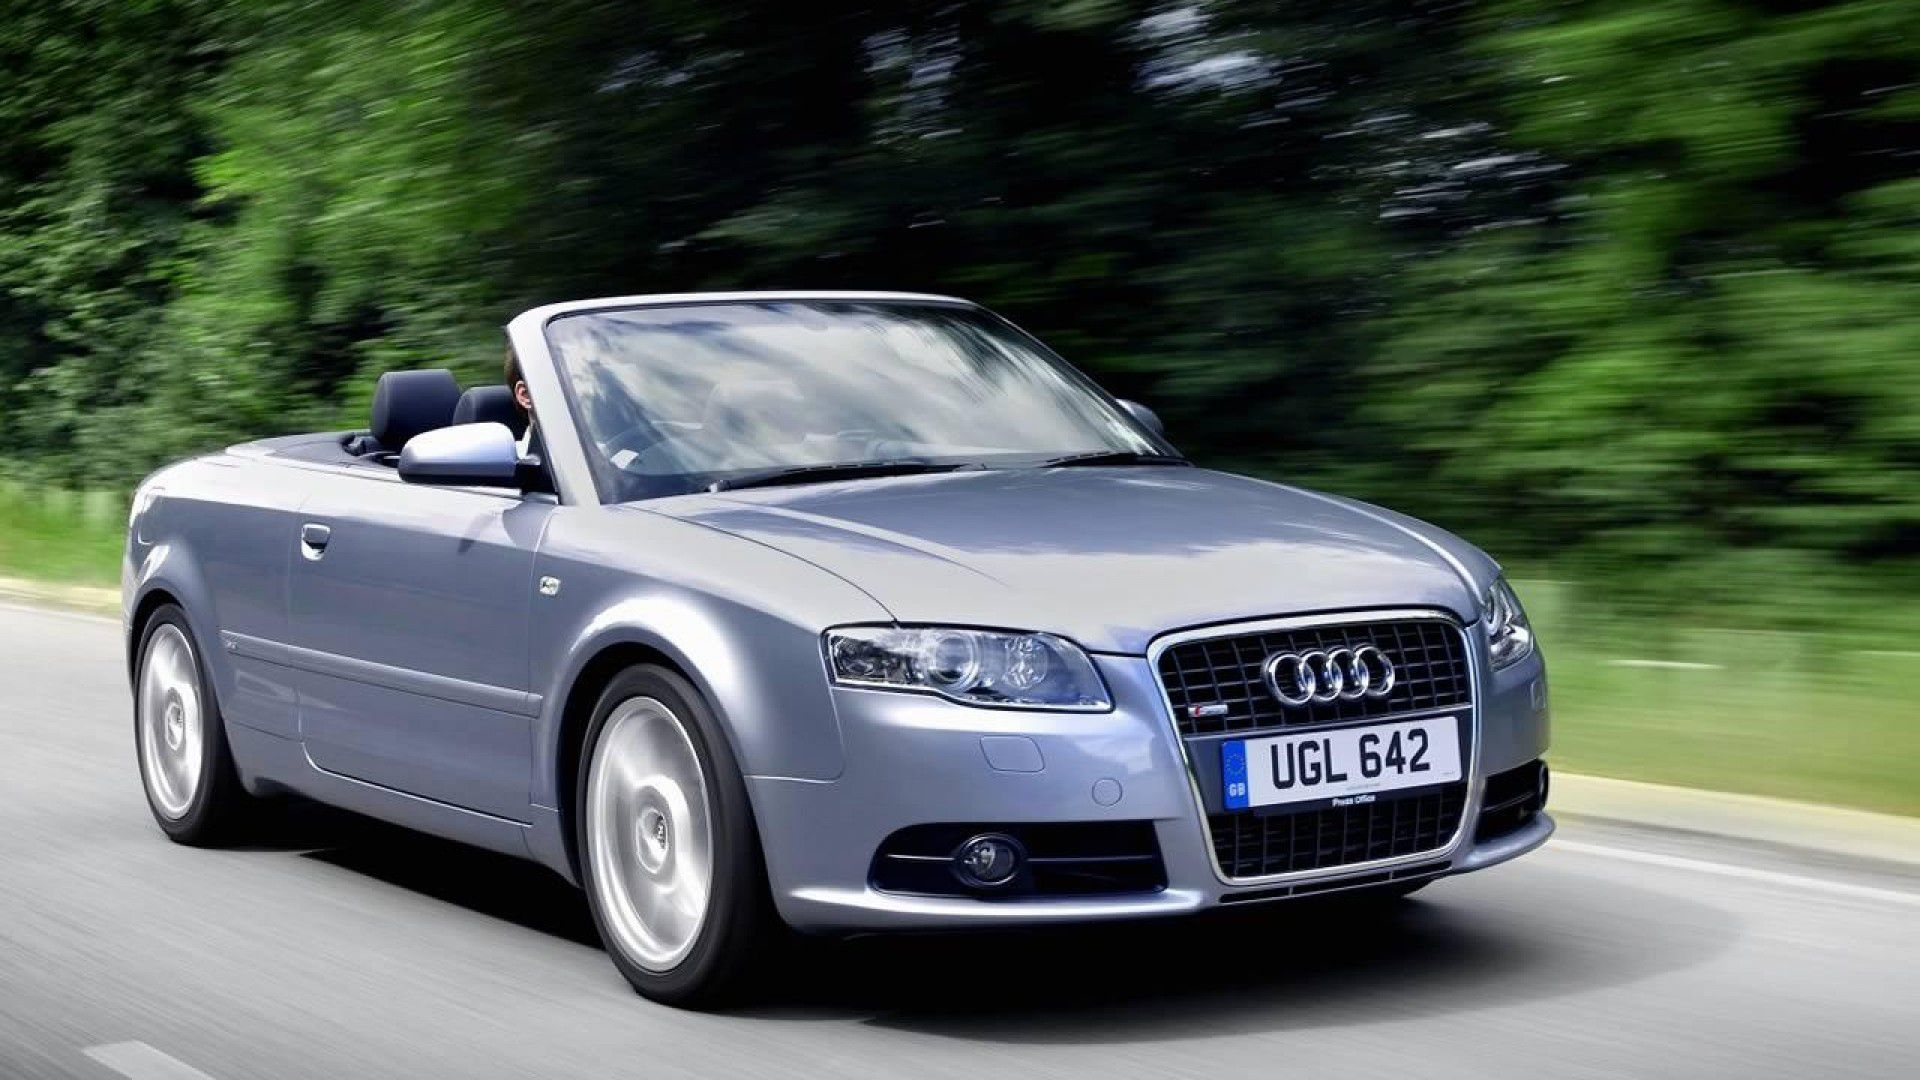 Audi A4 (2001 to 2007)